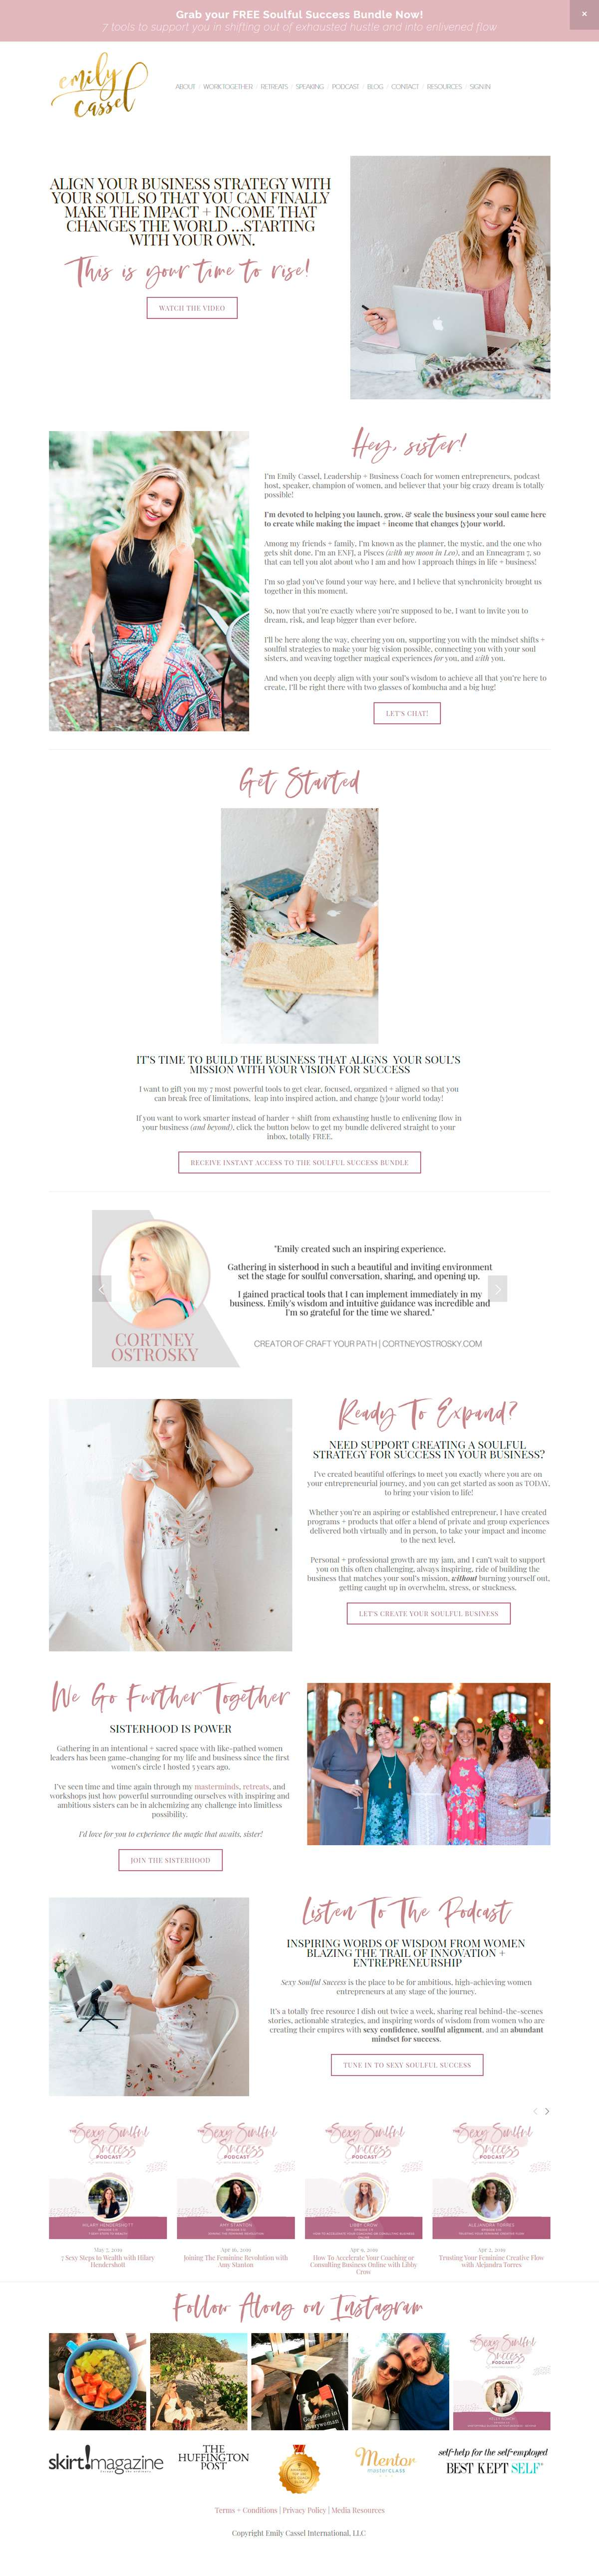 Want to see the best coaching websites in Squarespace? This one is for business strategy and mindset coach, Emily Cassel. Click through for inspiration for your website | www.jessicahainesdesign.com